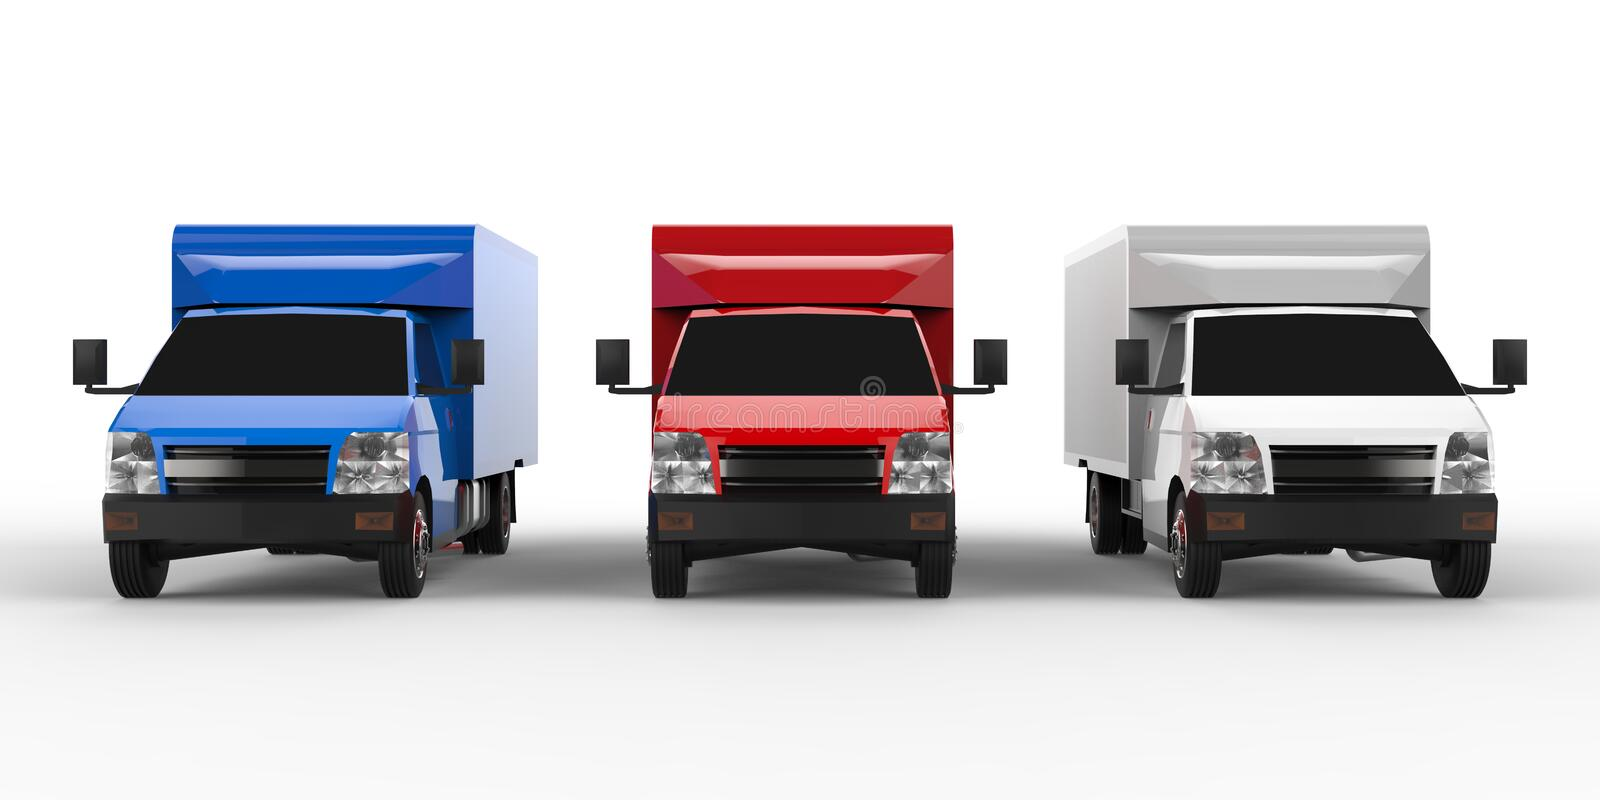 Small white, red, blue truck. Car delivery service. Delivery of goods and products to retail outlets. 3d rendering. stock illustration